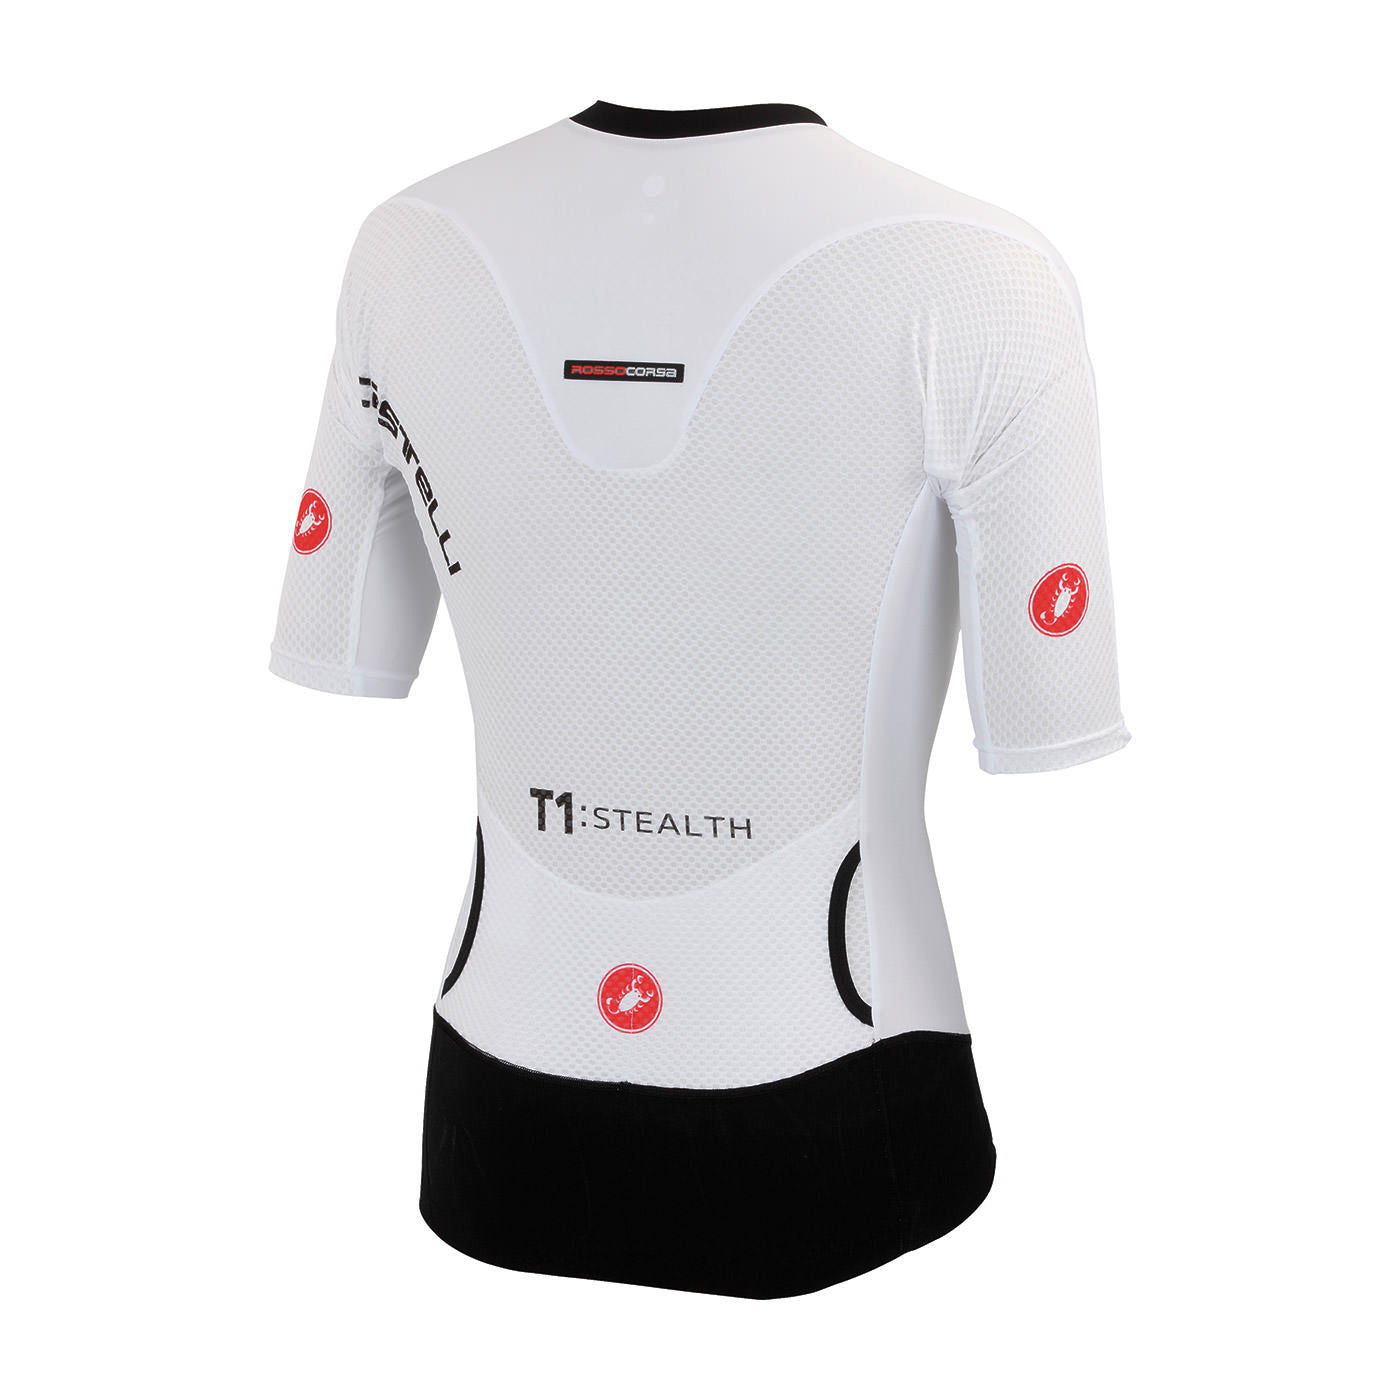 Castelli T1: Stealth Top - Men's